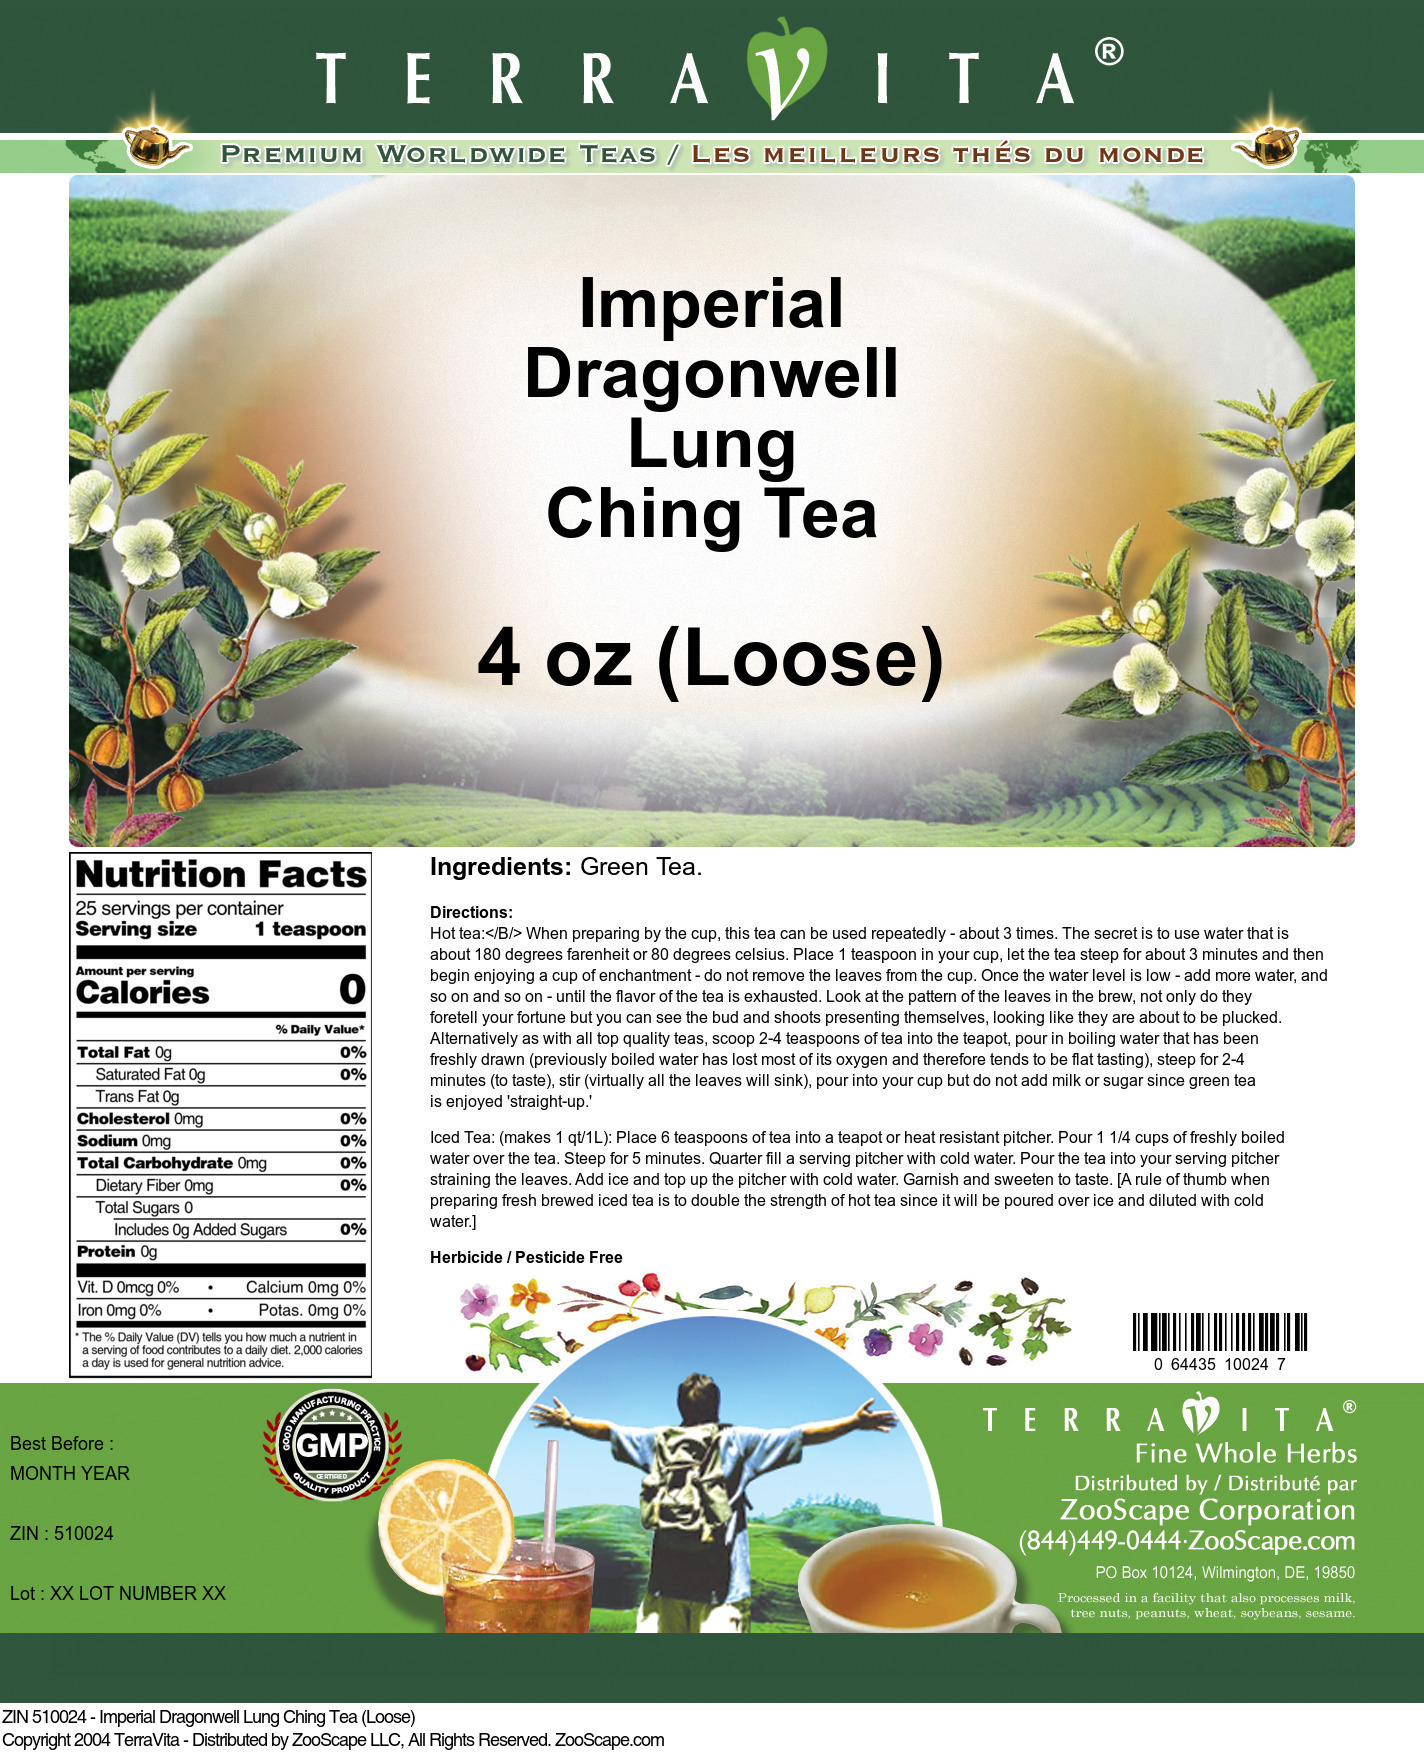 Imperial Dragonwell Lung Ching